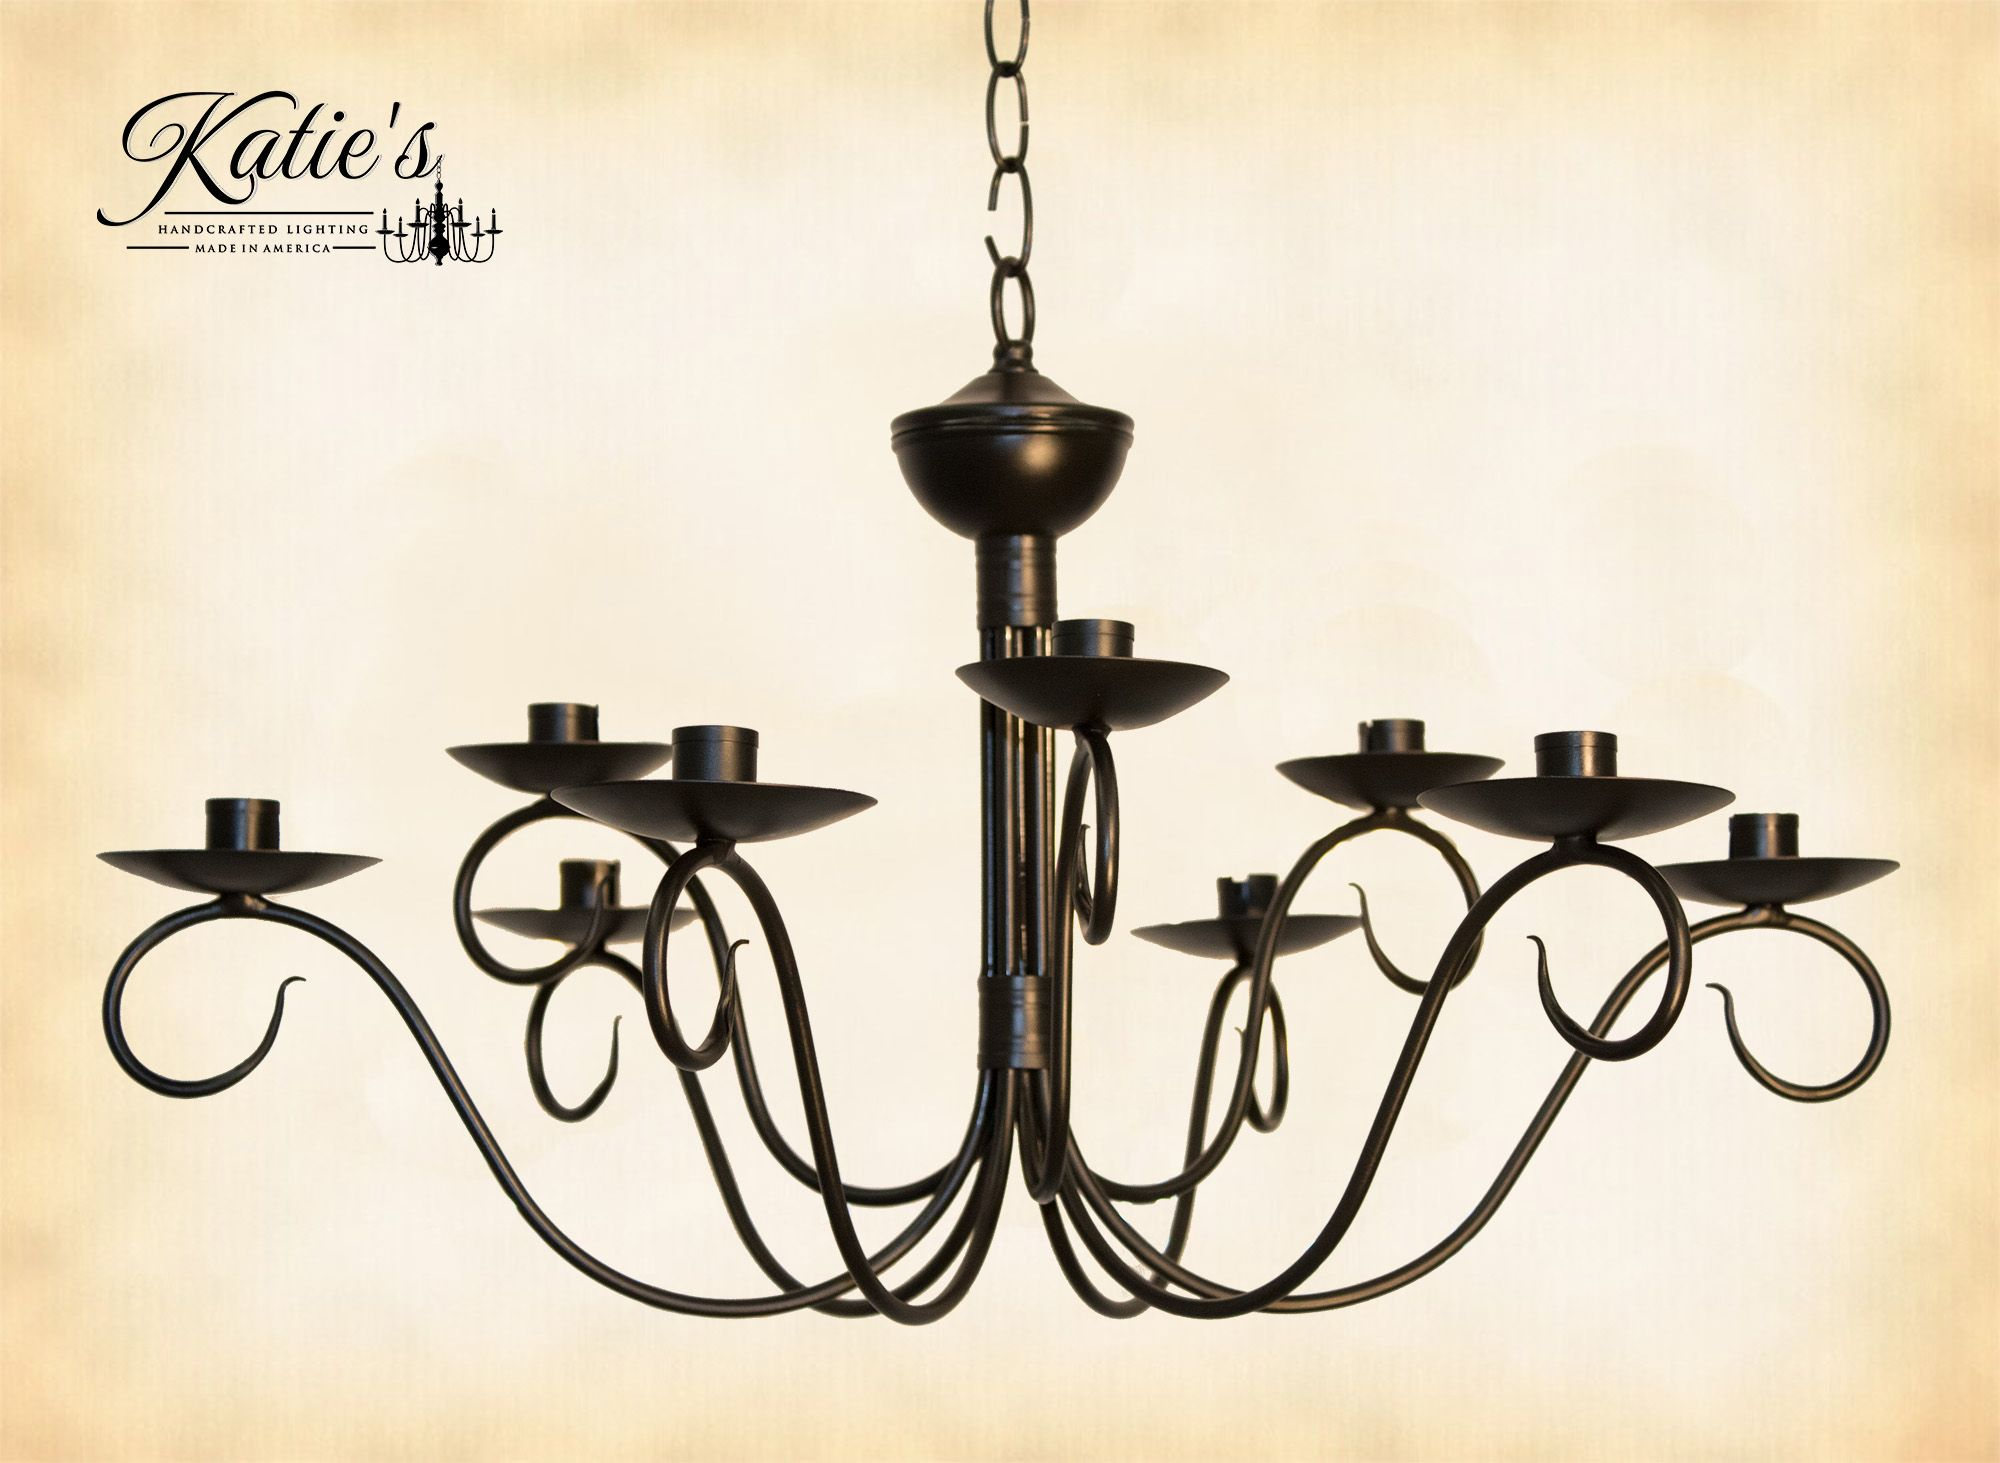 Washington 2 Tier Wrought Iron Candle Chandelier by Katie s